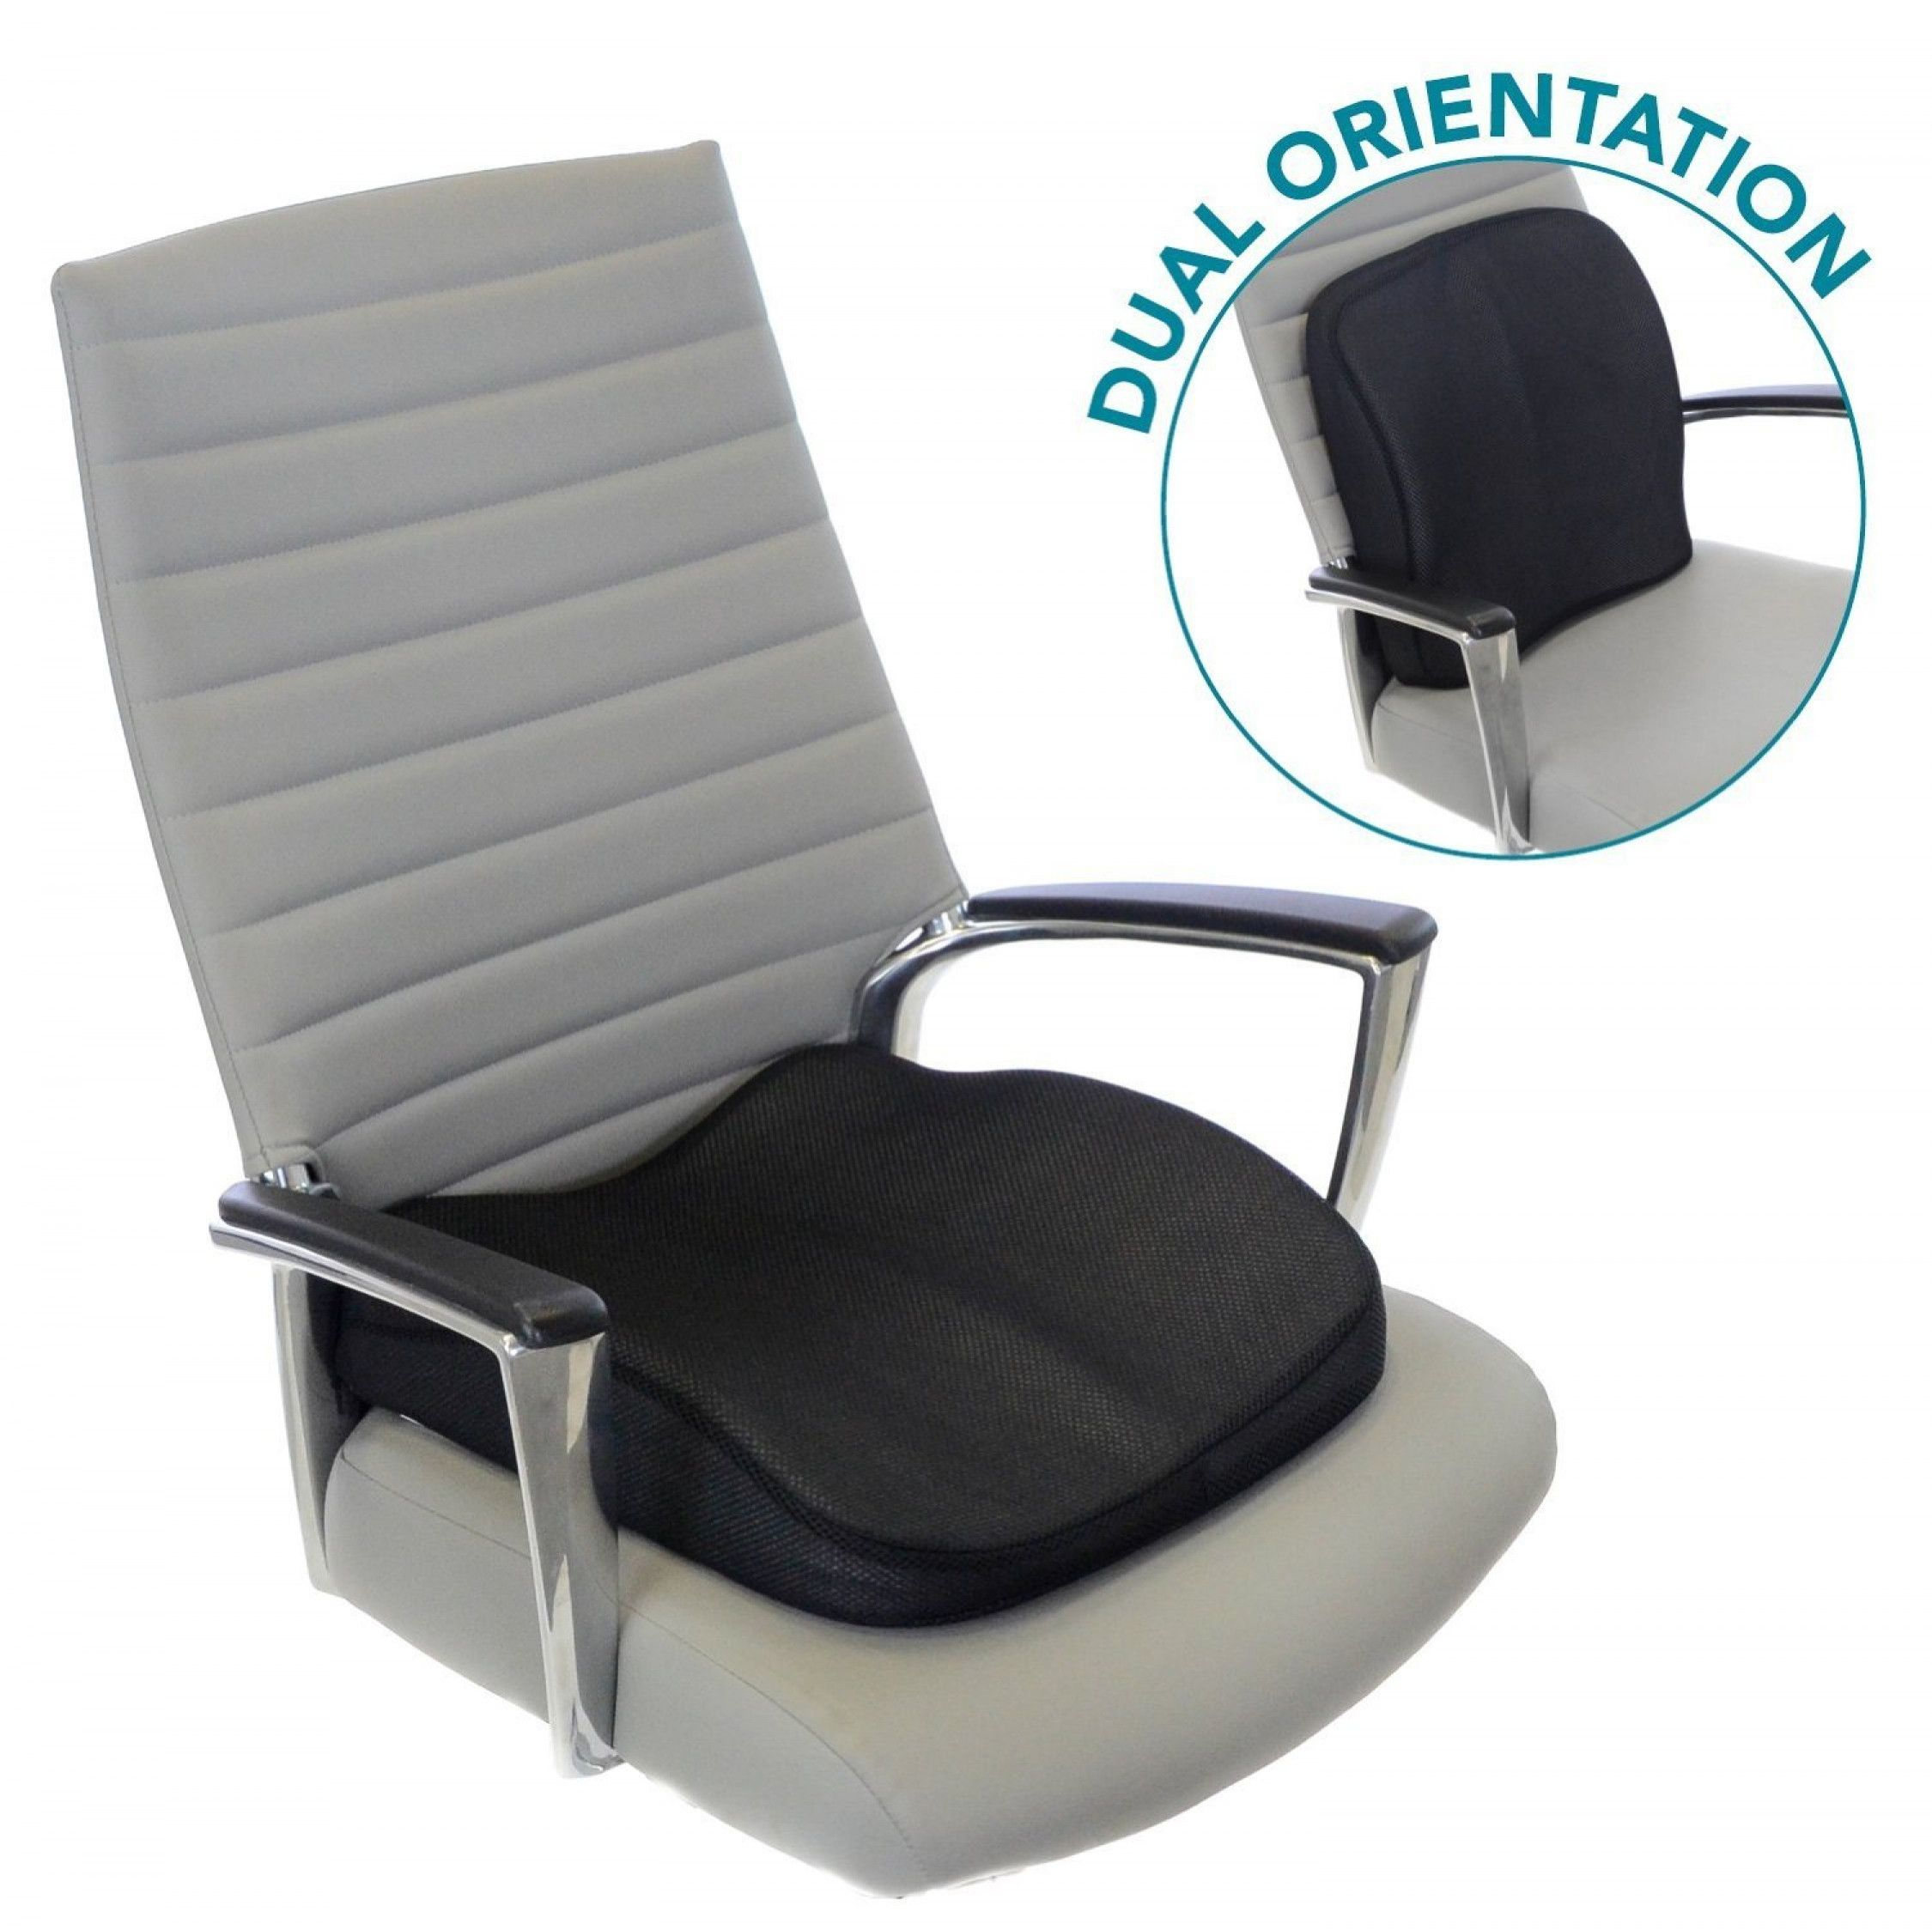 Memory foam desk chair pillow devintavern pinterest